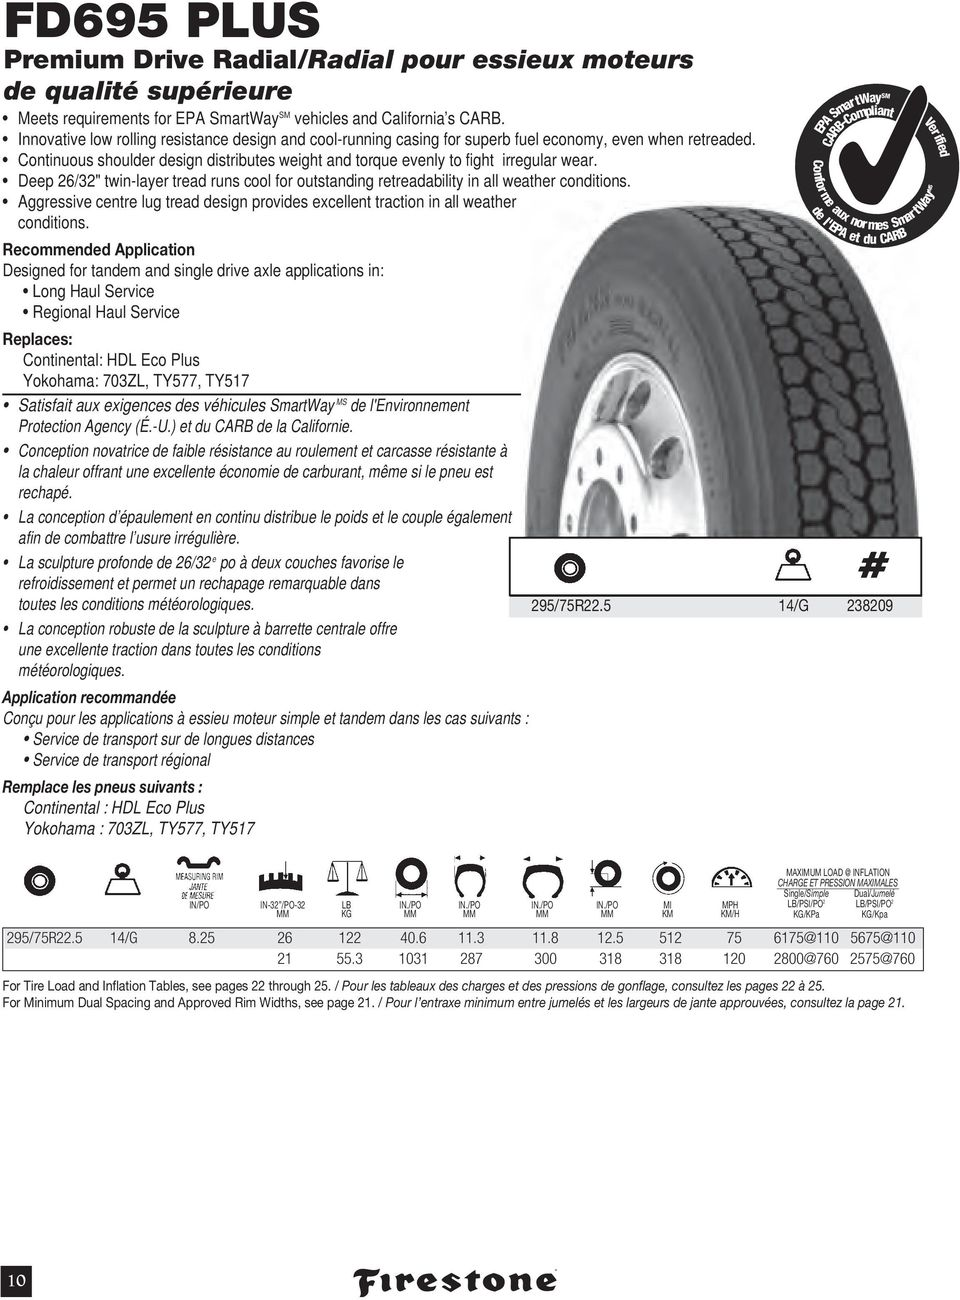 "Deep 26/32"" twin-layer tread runs cool for outstanding retreadability in all weather conditions. Aggressive centre lug tread design provides excellent traction in all weather conditions."